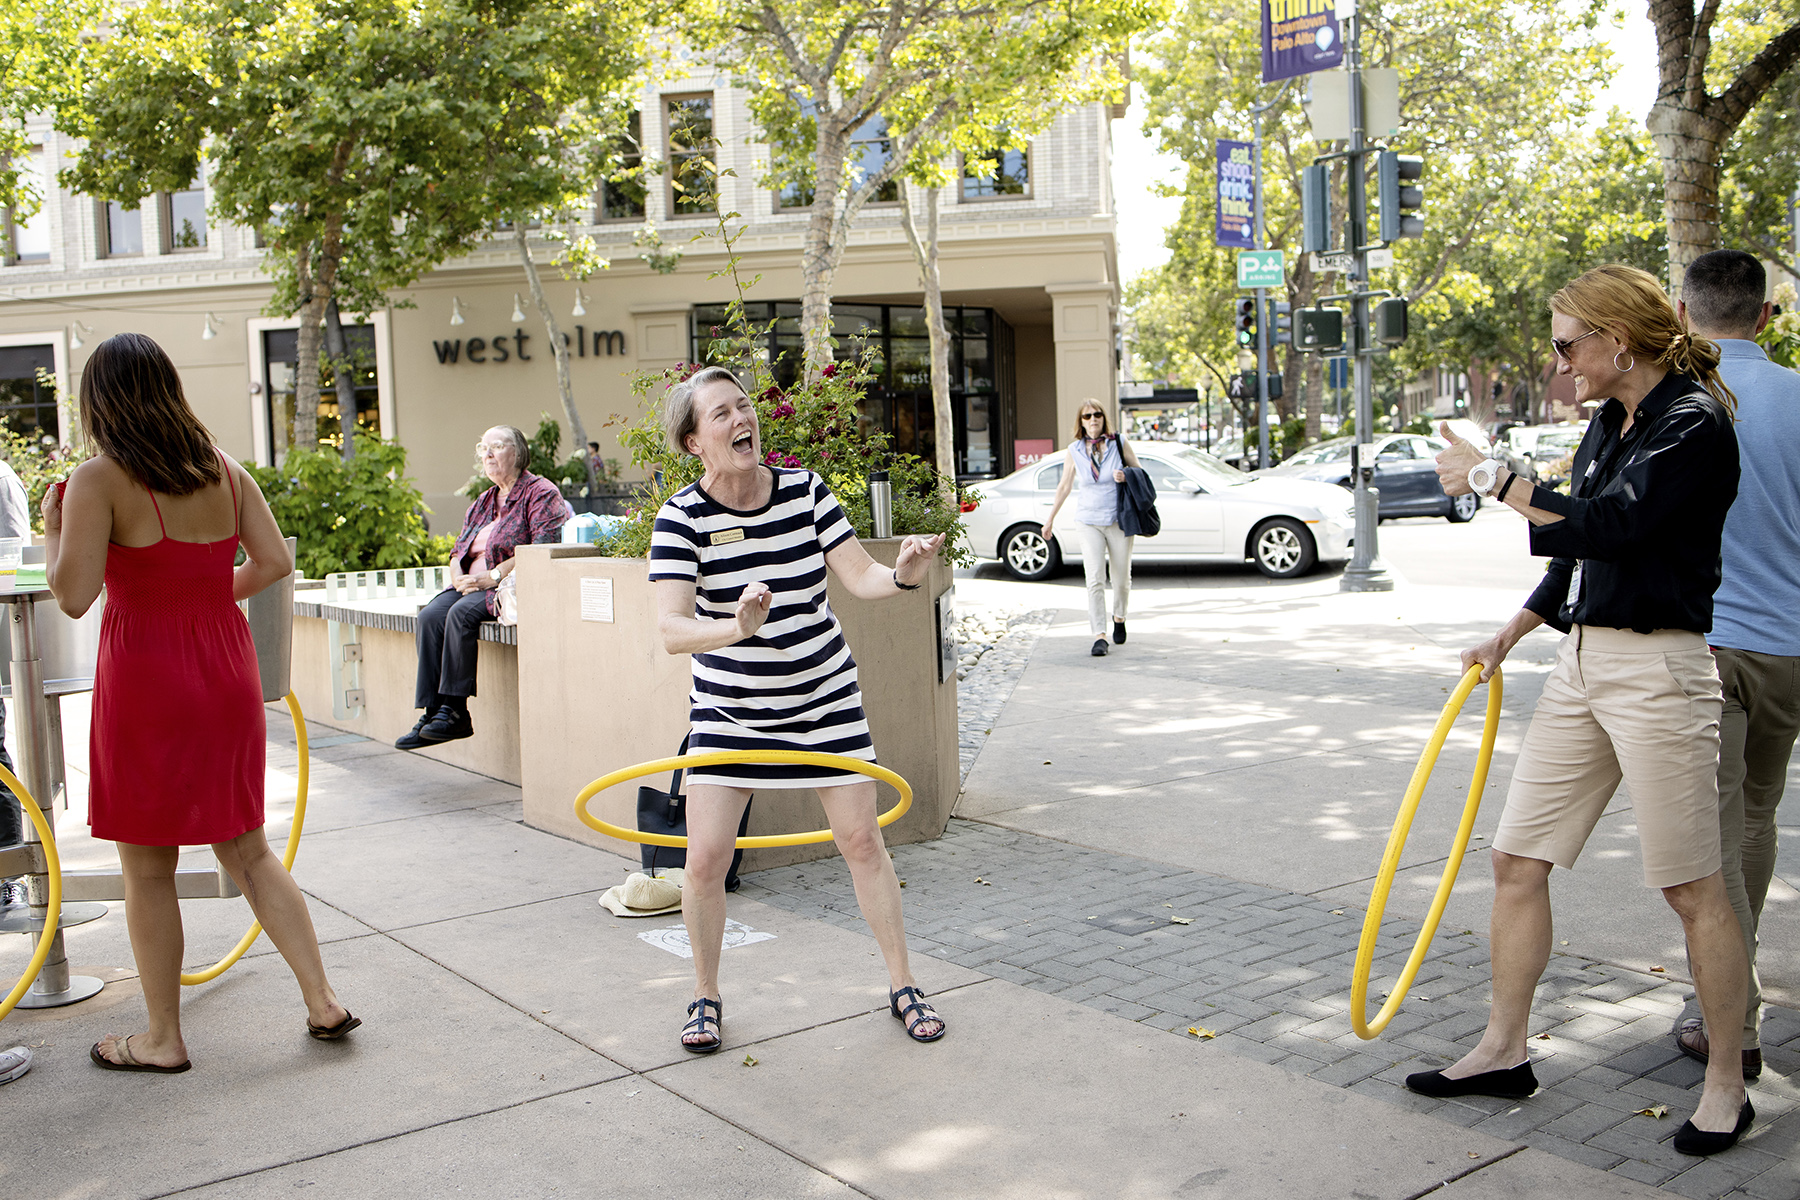 City Council Member Alison Cormack hula hoops during an event to celebrate the {quote}grand reopening{quote} of downtown after road closures at Lytton Plaza on University Avenue in Palo Alto, Calif., on June 11, 2019. Known as {quote}Upgrade Downtown,{quote} the project began in the spring of 2018 and included the installation of traffic poles and directional signs, widened sidewalks, new space for bike parking and upgrade of gas pipes, water lines and fiber cables.